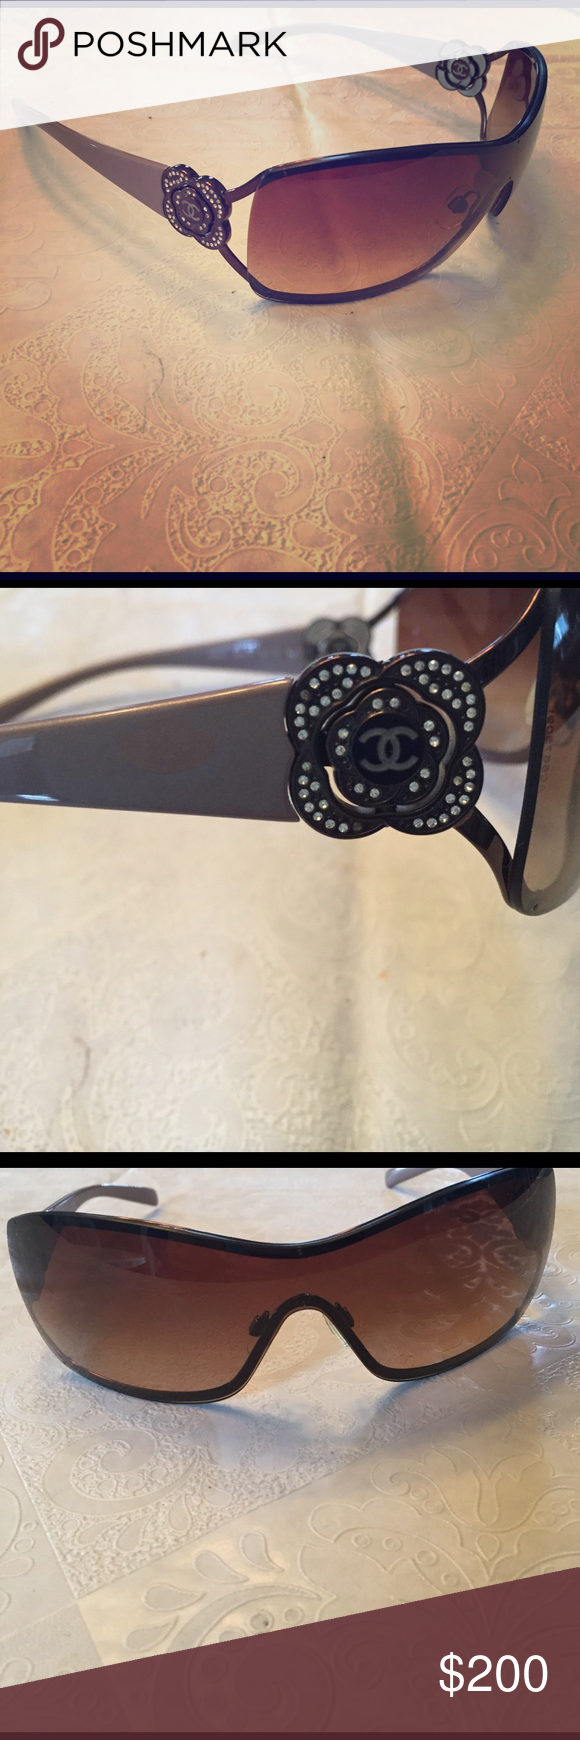 269d3ee02660e Chanel Sunglasses purchased at Sunglass Hut Chanel Shield Sunglasses. In  great shape. Has some wear and scratches on the lenses. Can see just fine  through ...